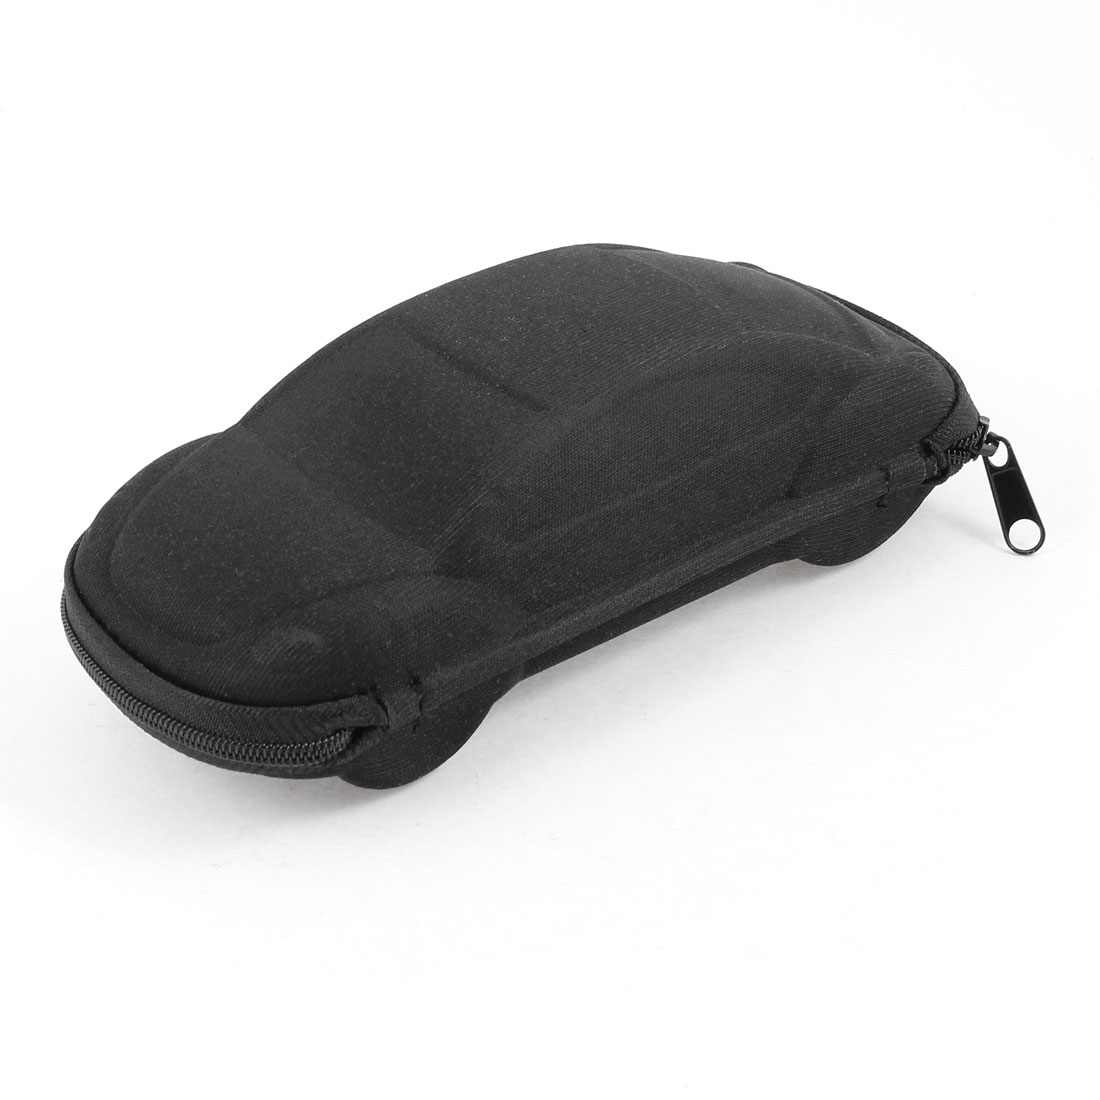 "Black Nylon Foam Car Shape Zipper Closure Sunglasses Box Holder 6.7"" Long"